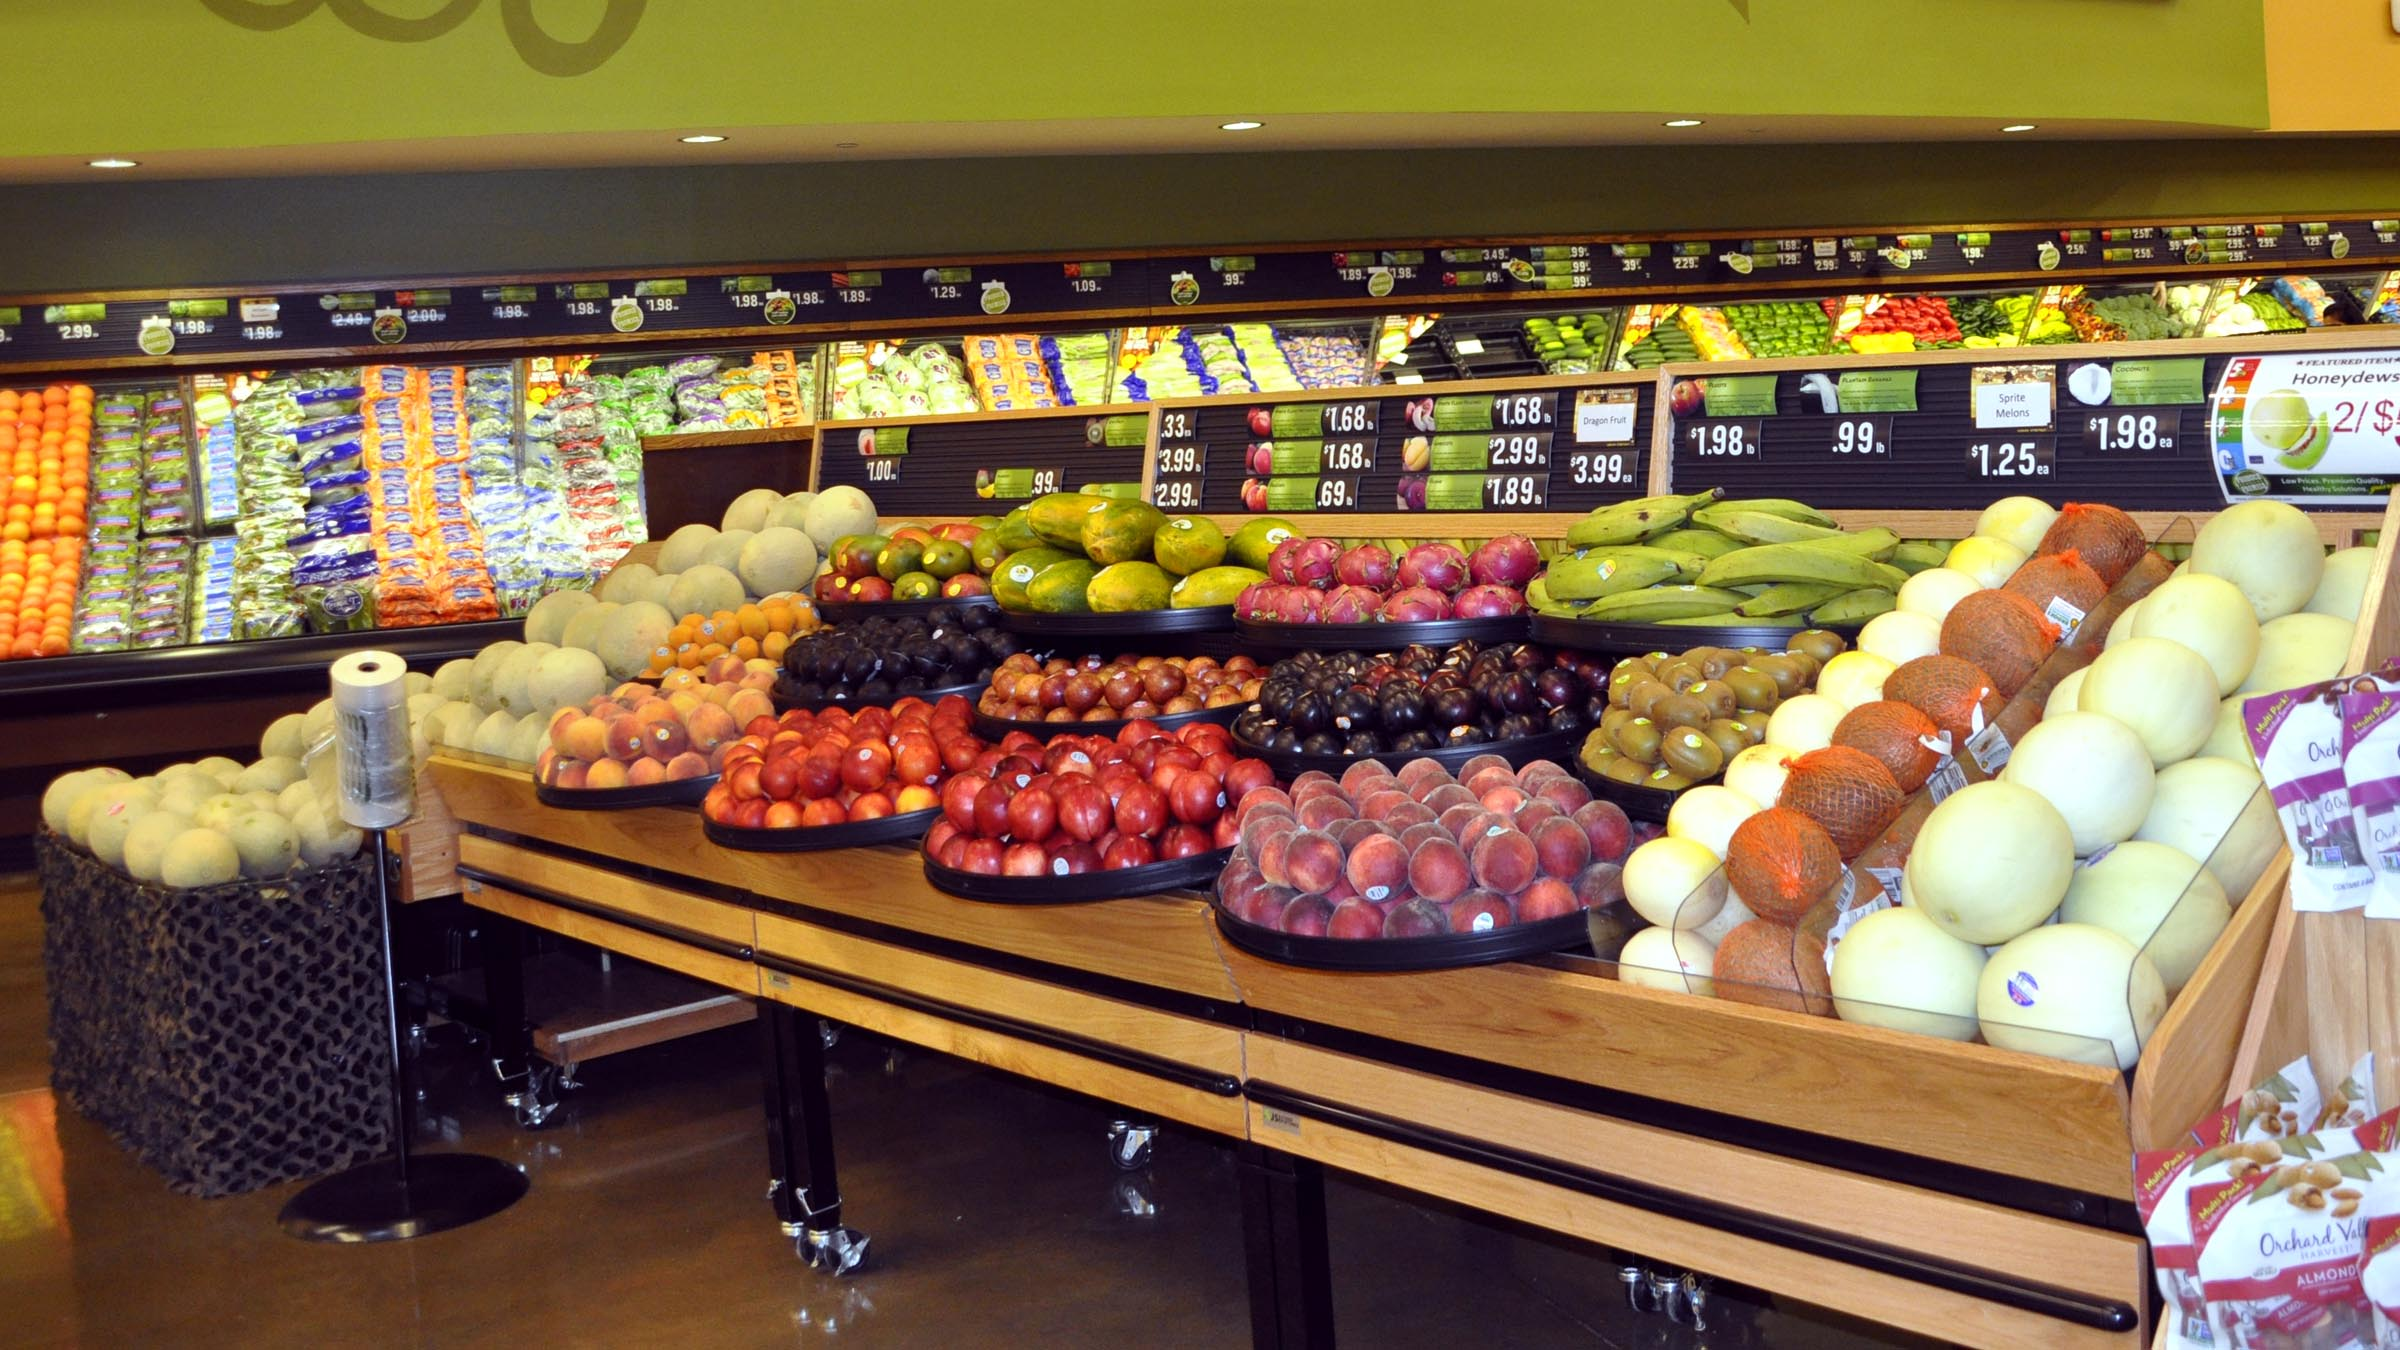 Produce section inside commissary